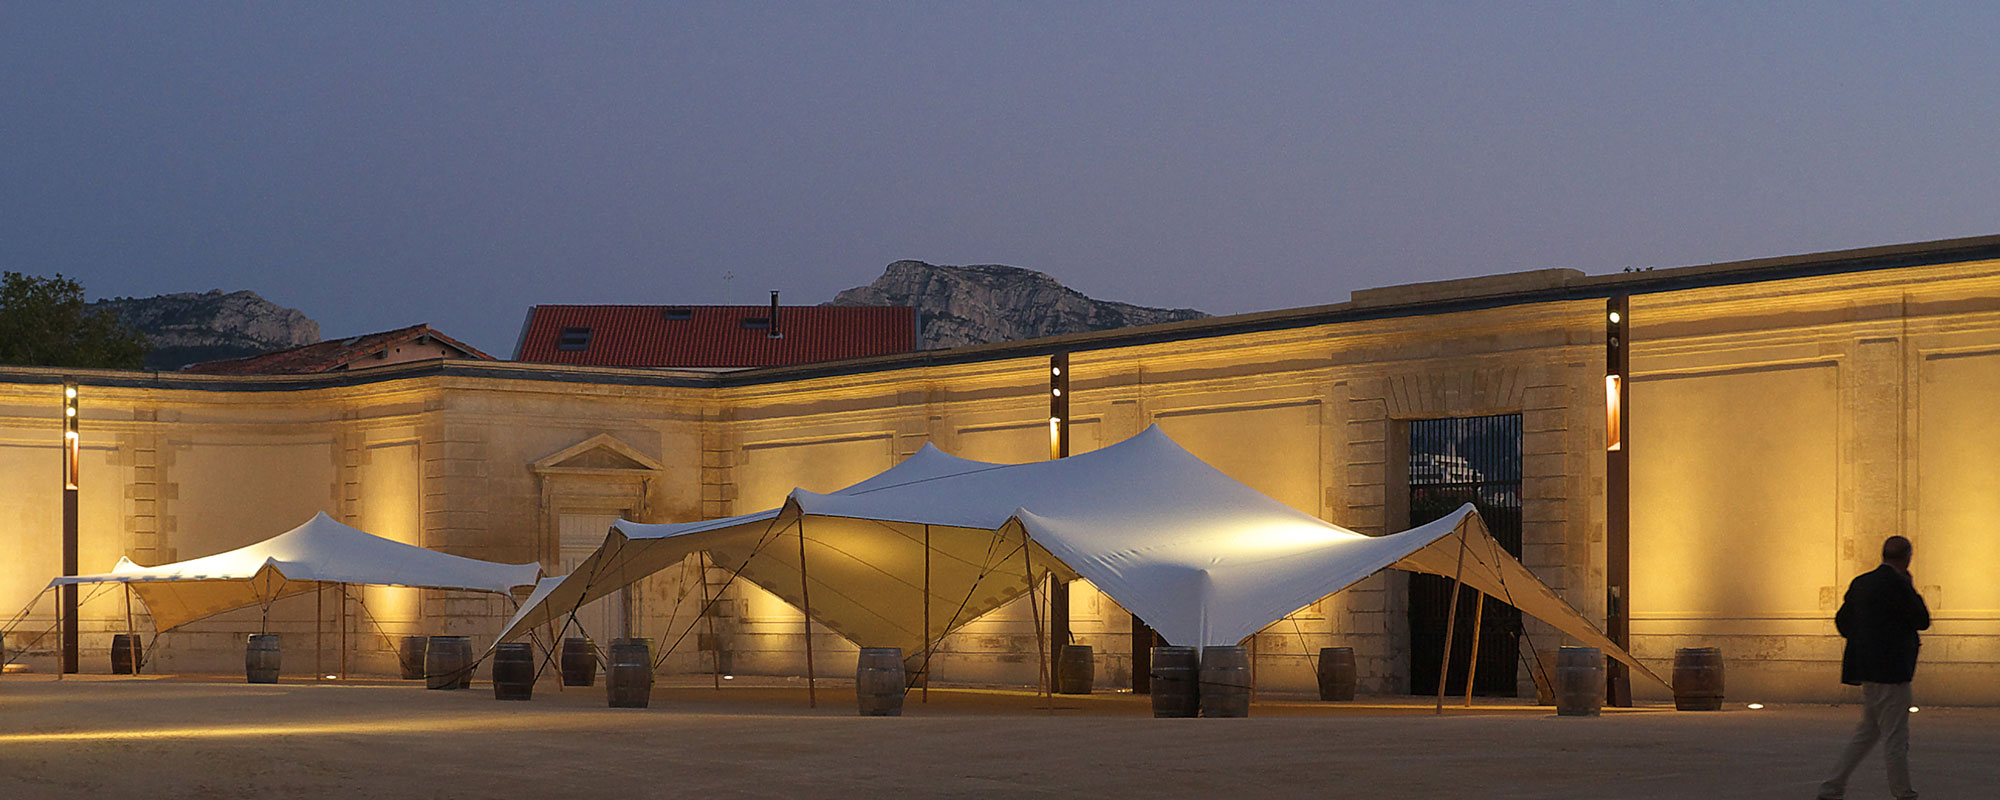 D_Marseille_Musee-Borely2